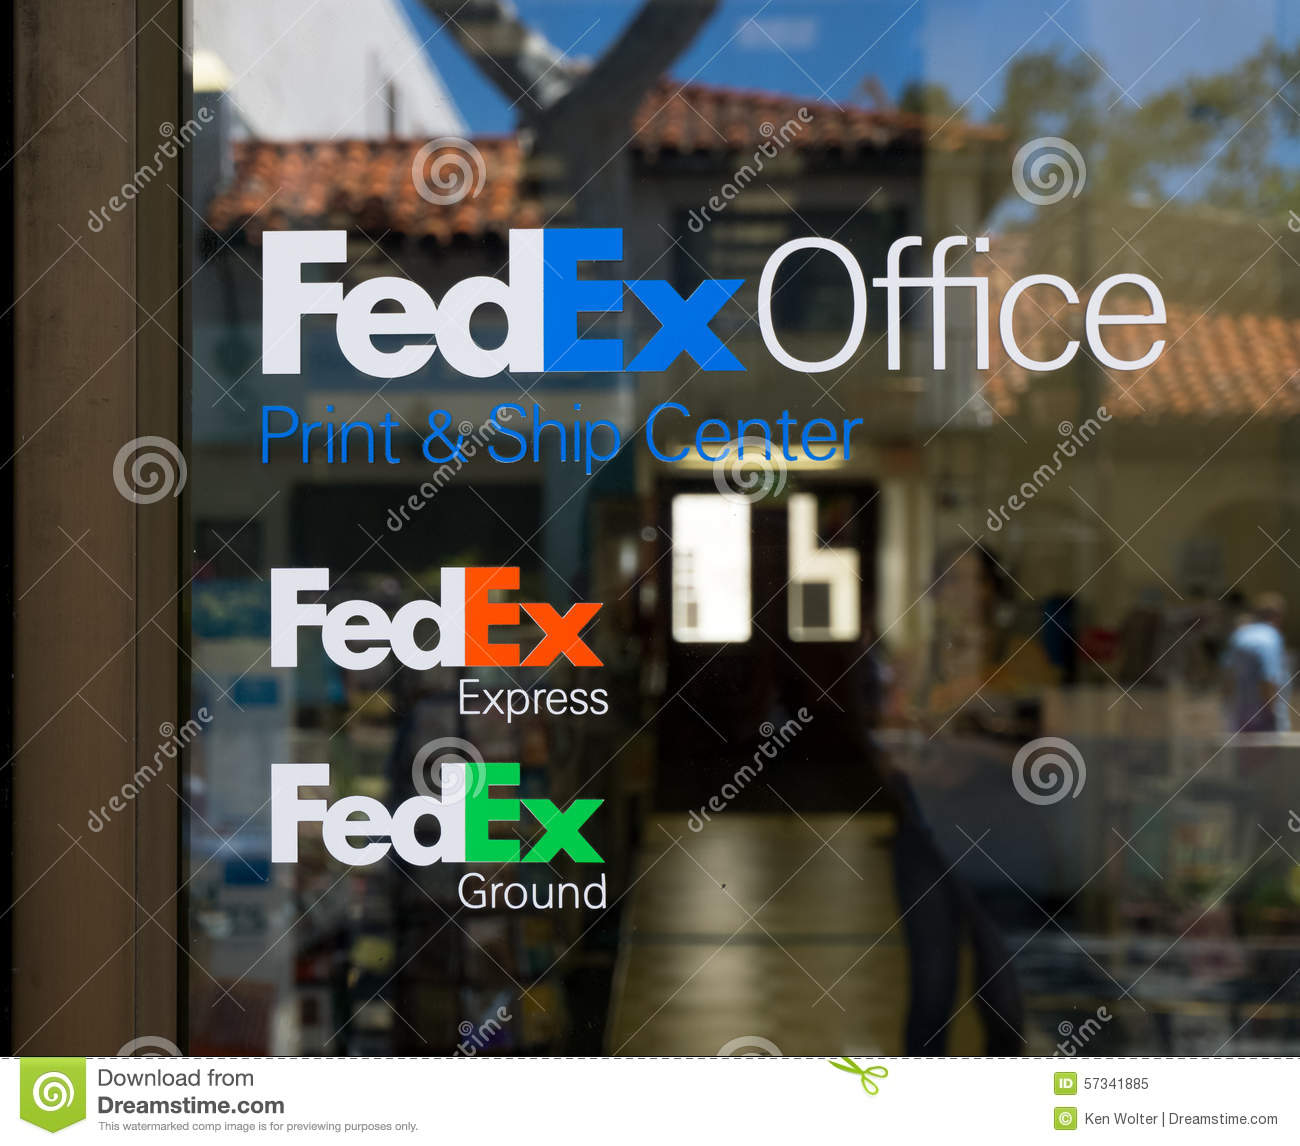 FedEx Store And Sign Editorial Image. Image Of Express